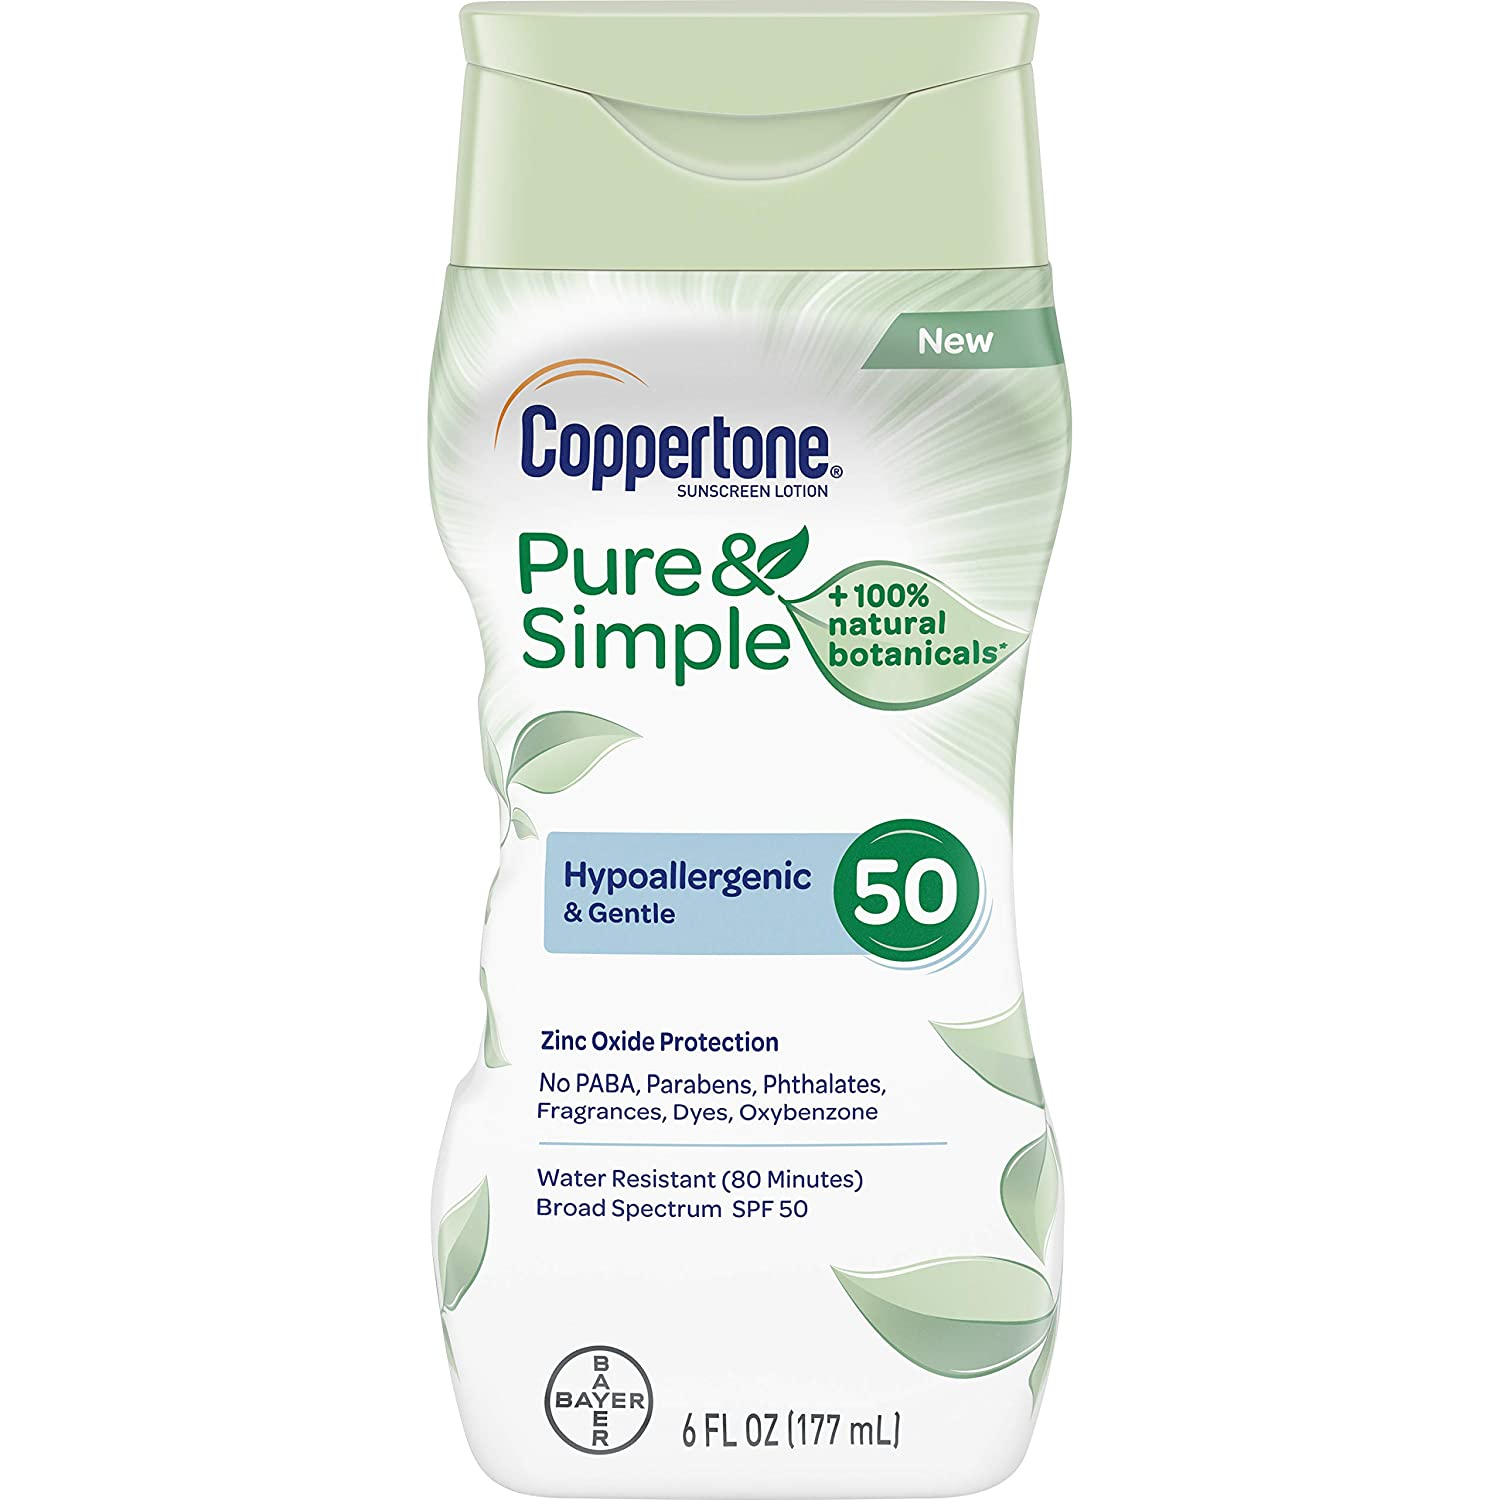 Coppertone Pure & Simple SPF 50 Sunscreen Lotion, Water Resistant, Hypoallergenic, Dermatologically Tested, Plus 100% Natural Botanicals, Broad Spectrum UVA/UVB Protection, 6 Fluid Ounce